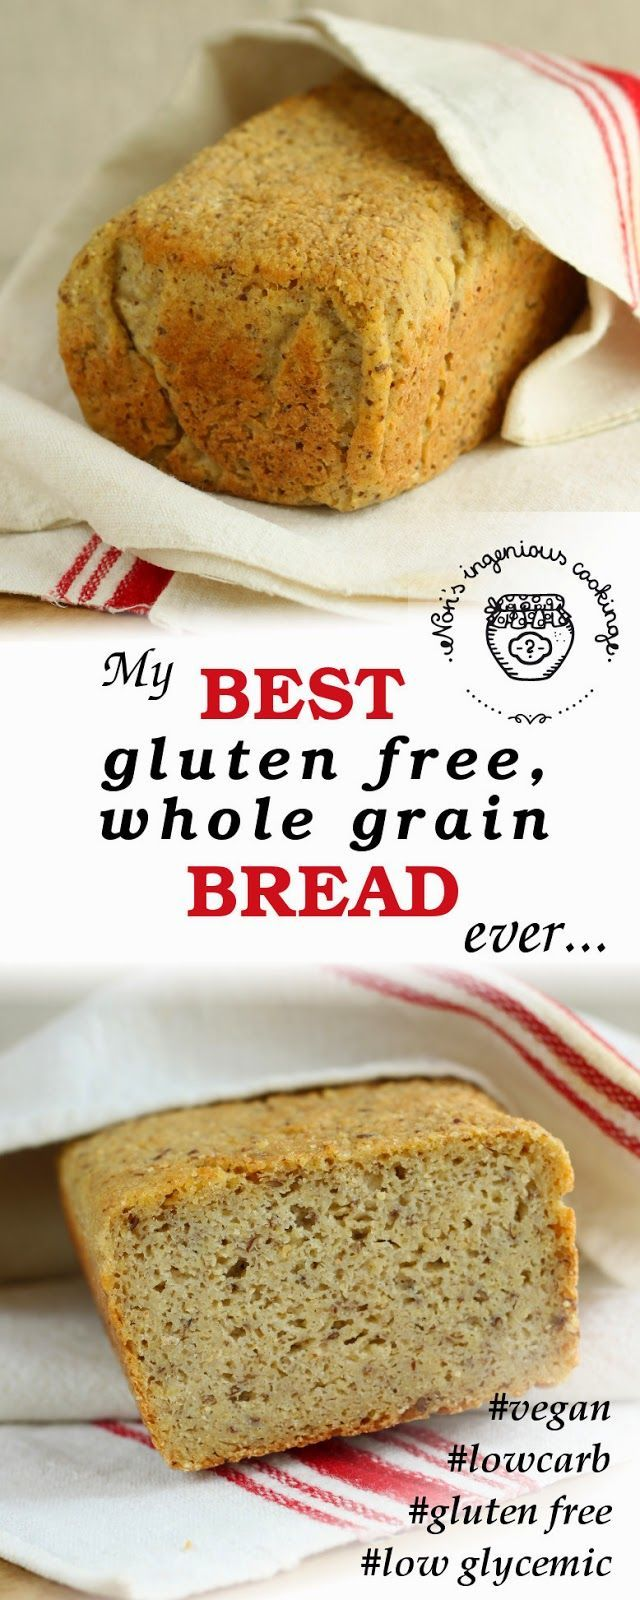 http://www.ingeniouscooking.com/2015/02/my-best-gluten-free-whole-grain-bread.html